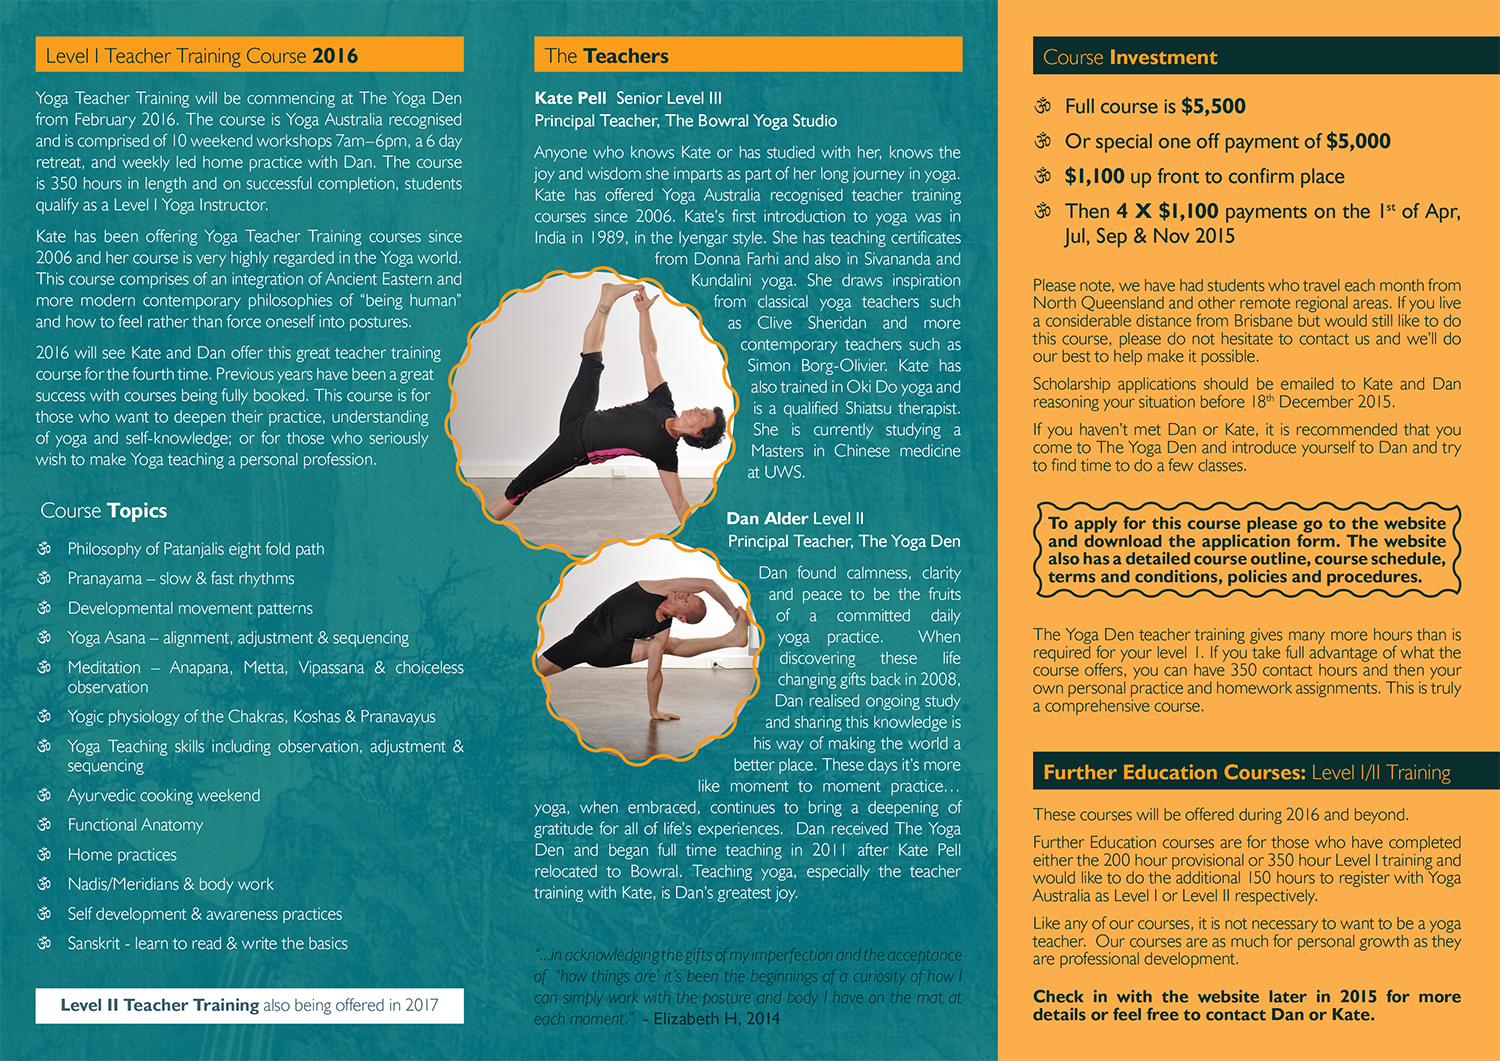 brochure-theyogaden-training-2016-2